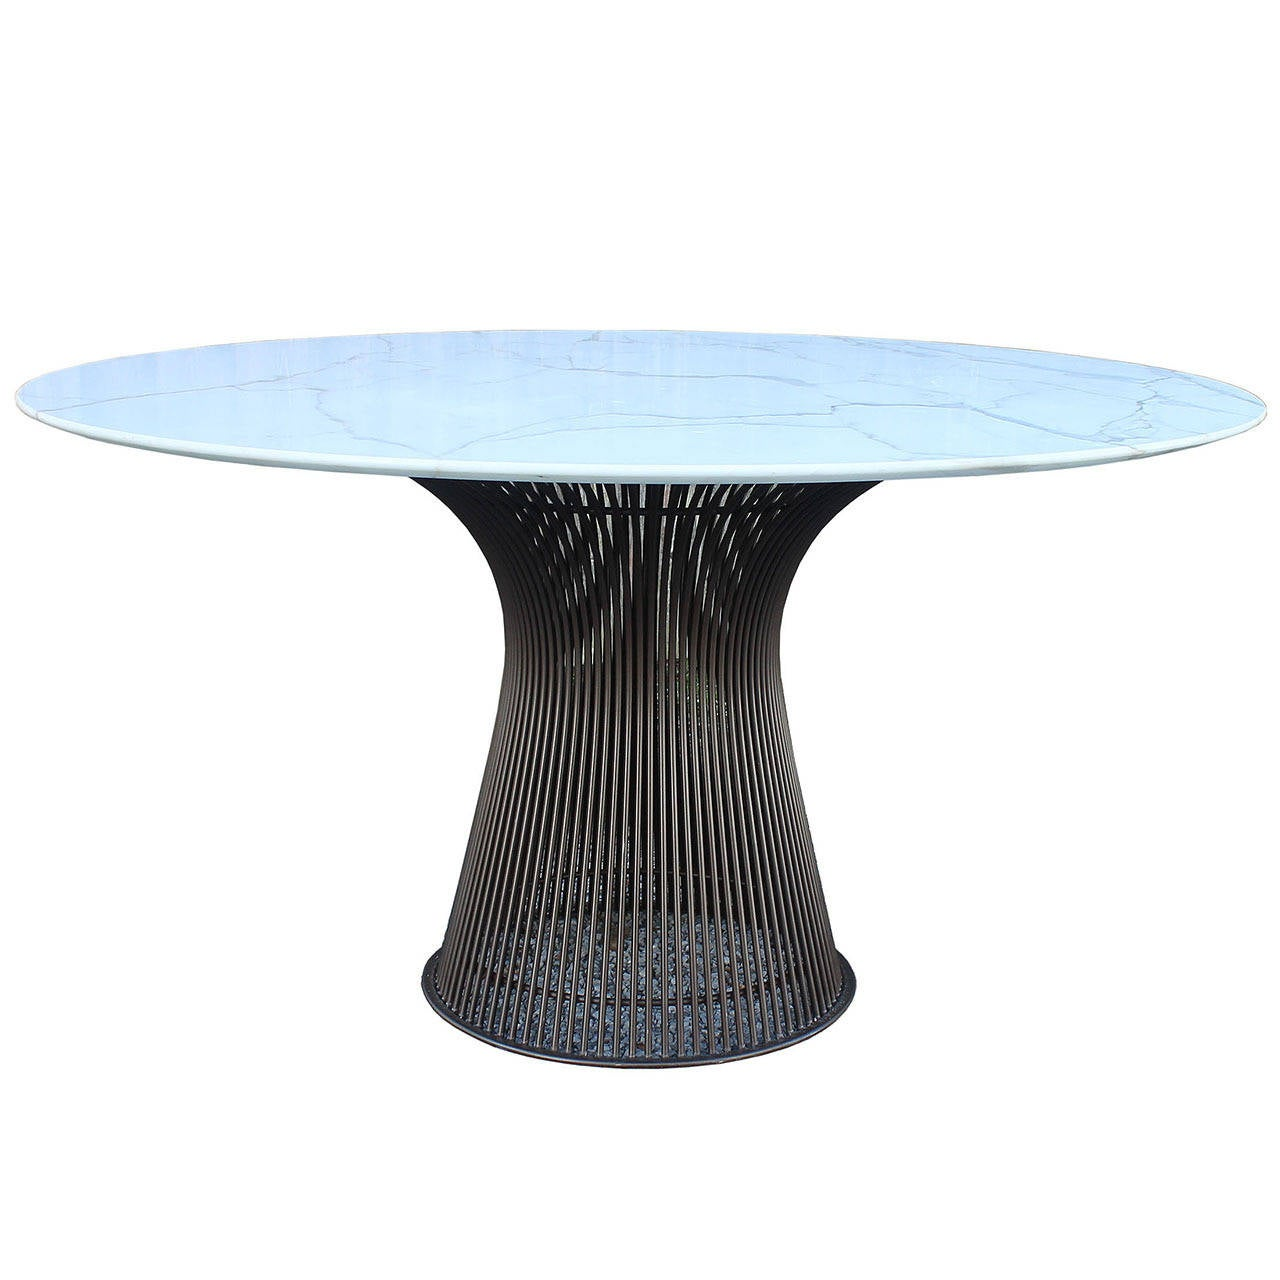 Warren Platner Dining Tables American HWY : 2211562l from www.americanhwy.us size 1280 x 1280 jpeg 95kB